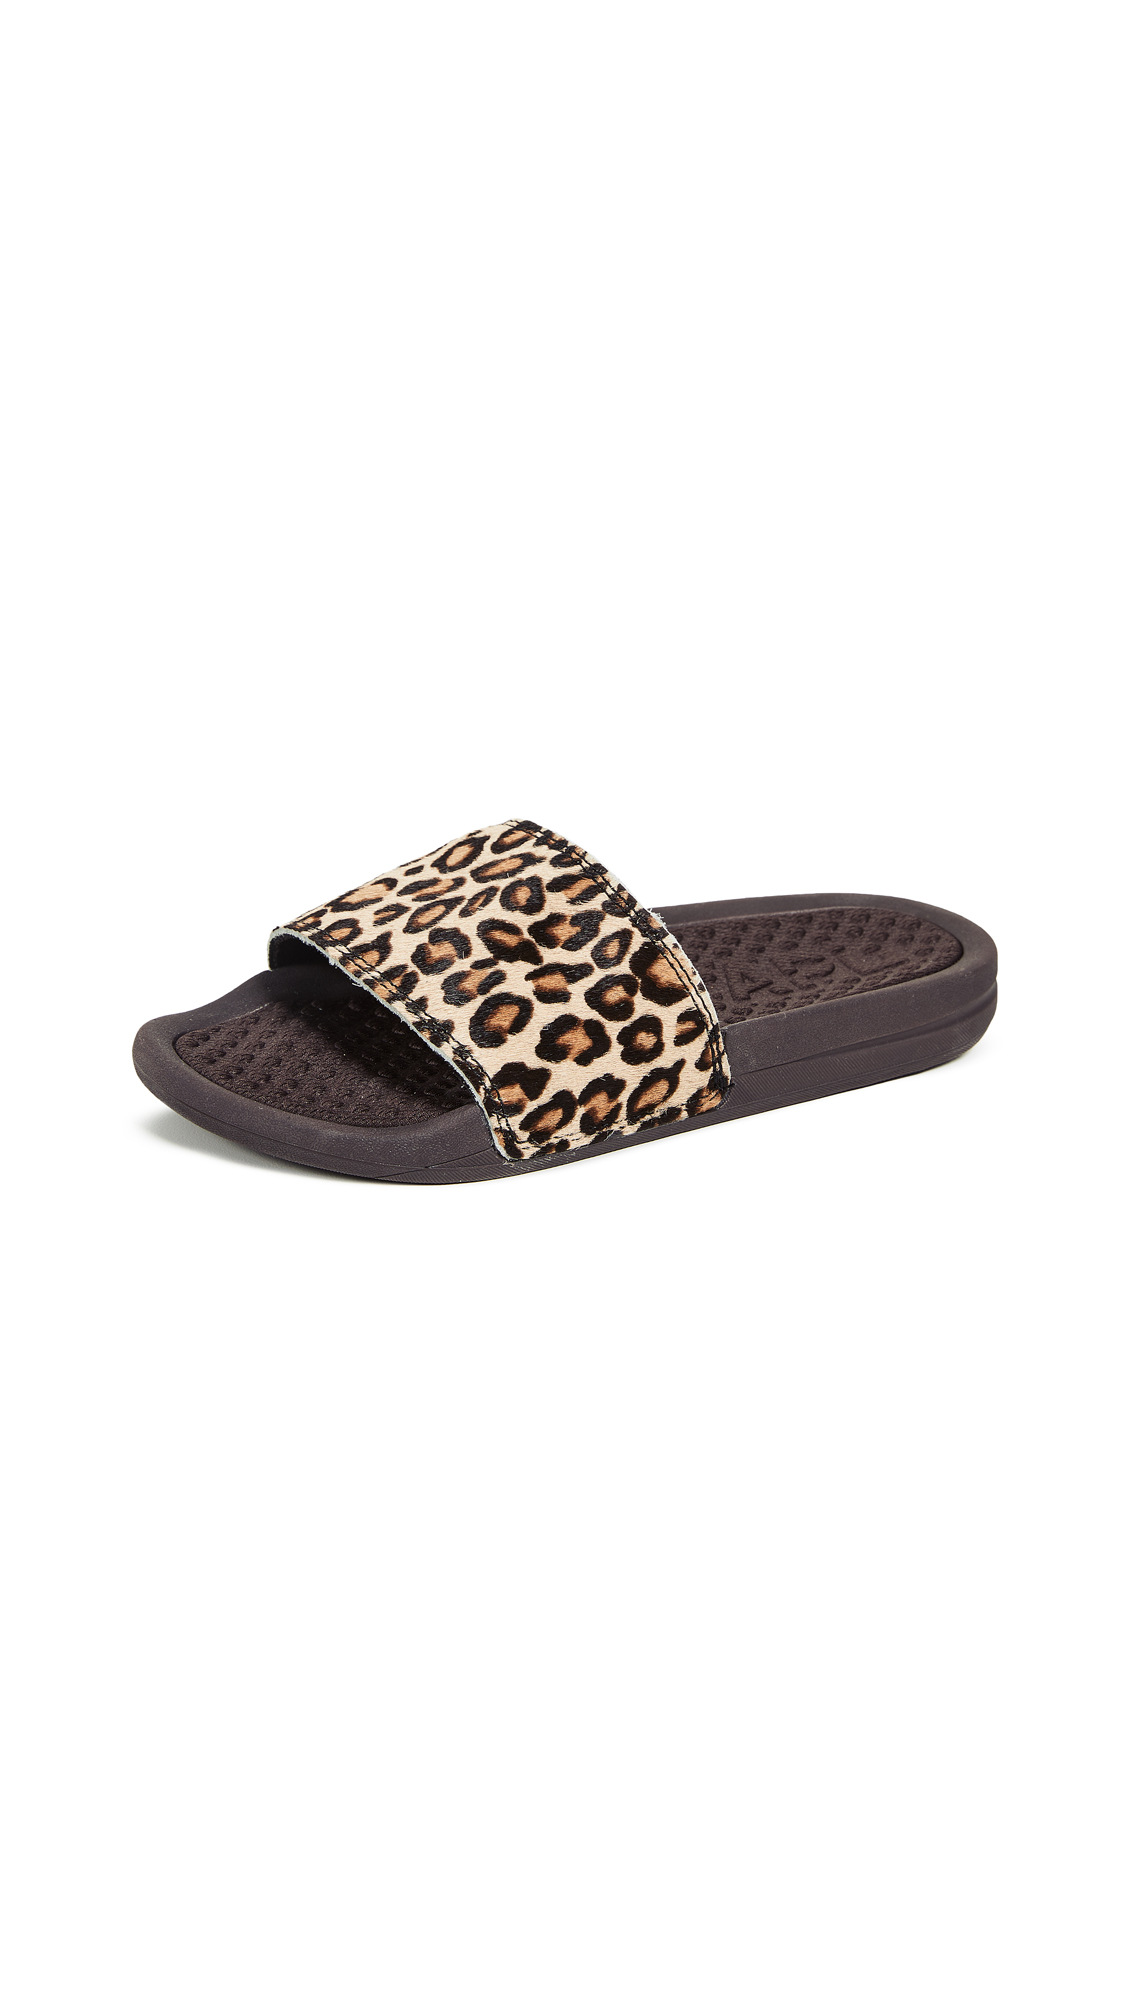 APL: Athletic Propulsion Labs Iconic Calf Hair Slide - Cheetah